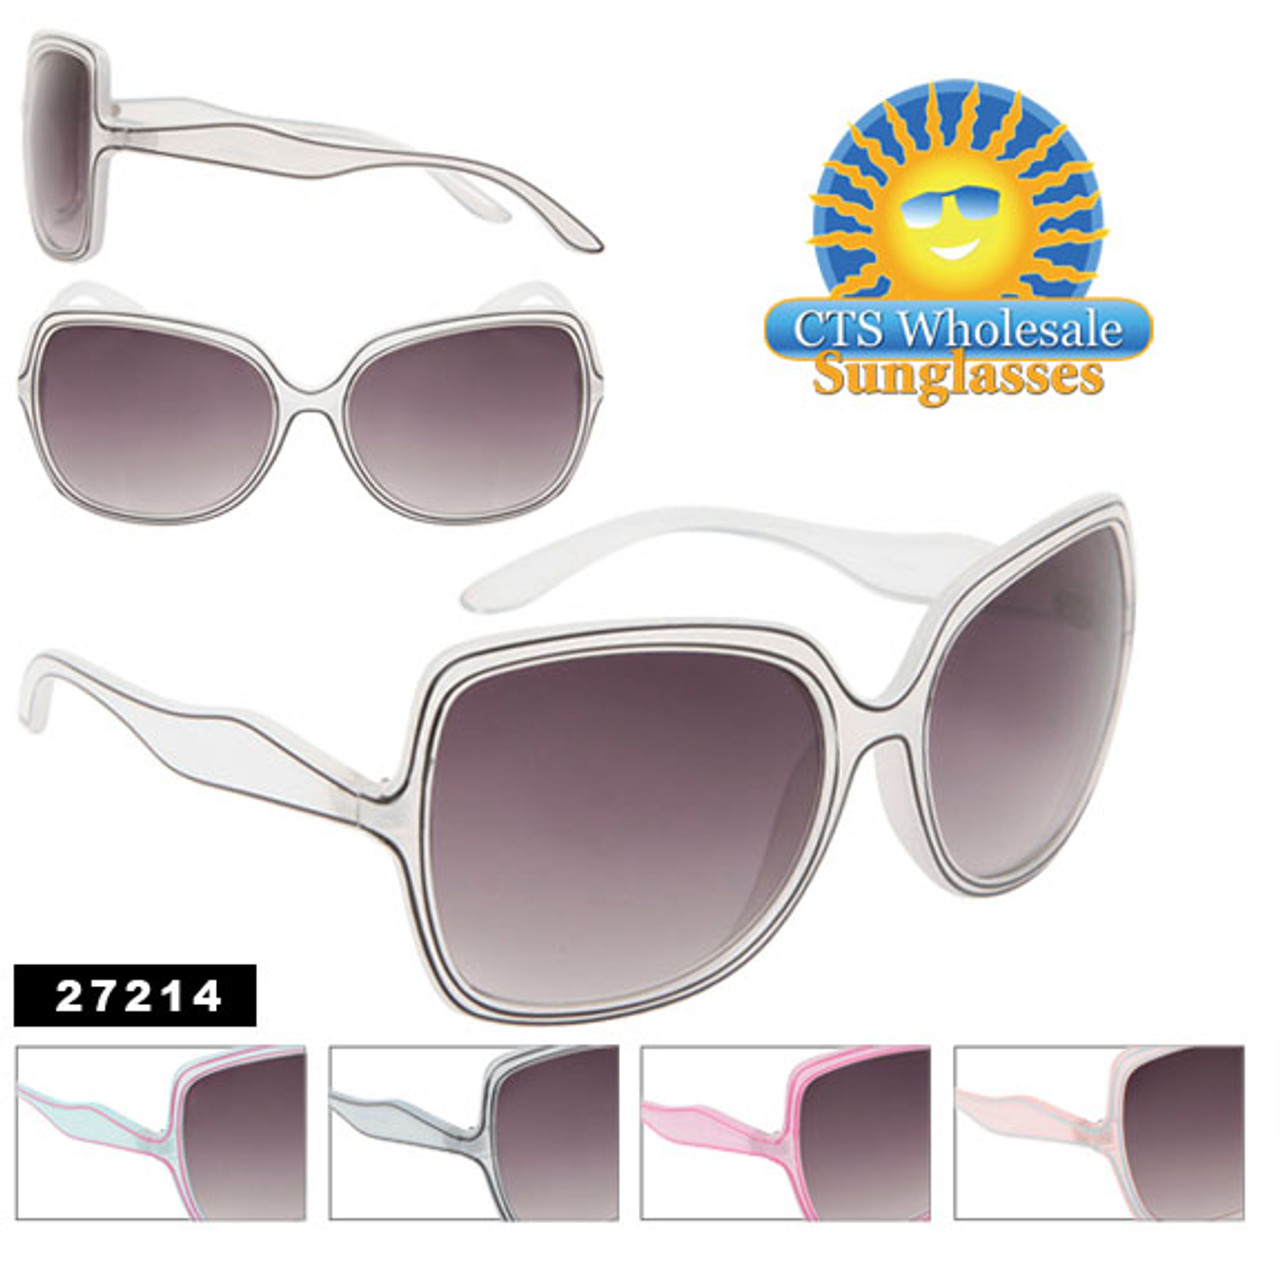 Big Lens Sunglasses 27214